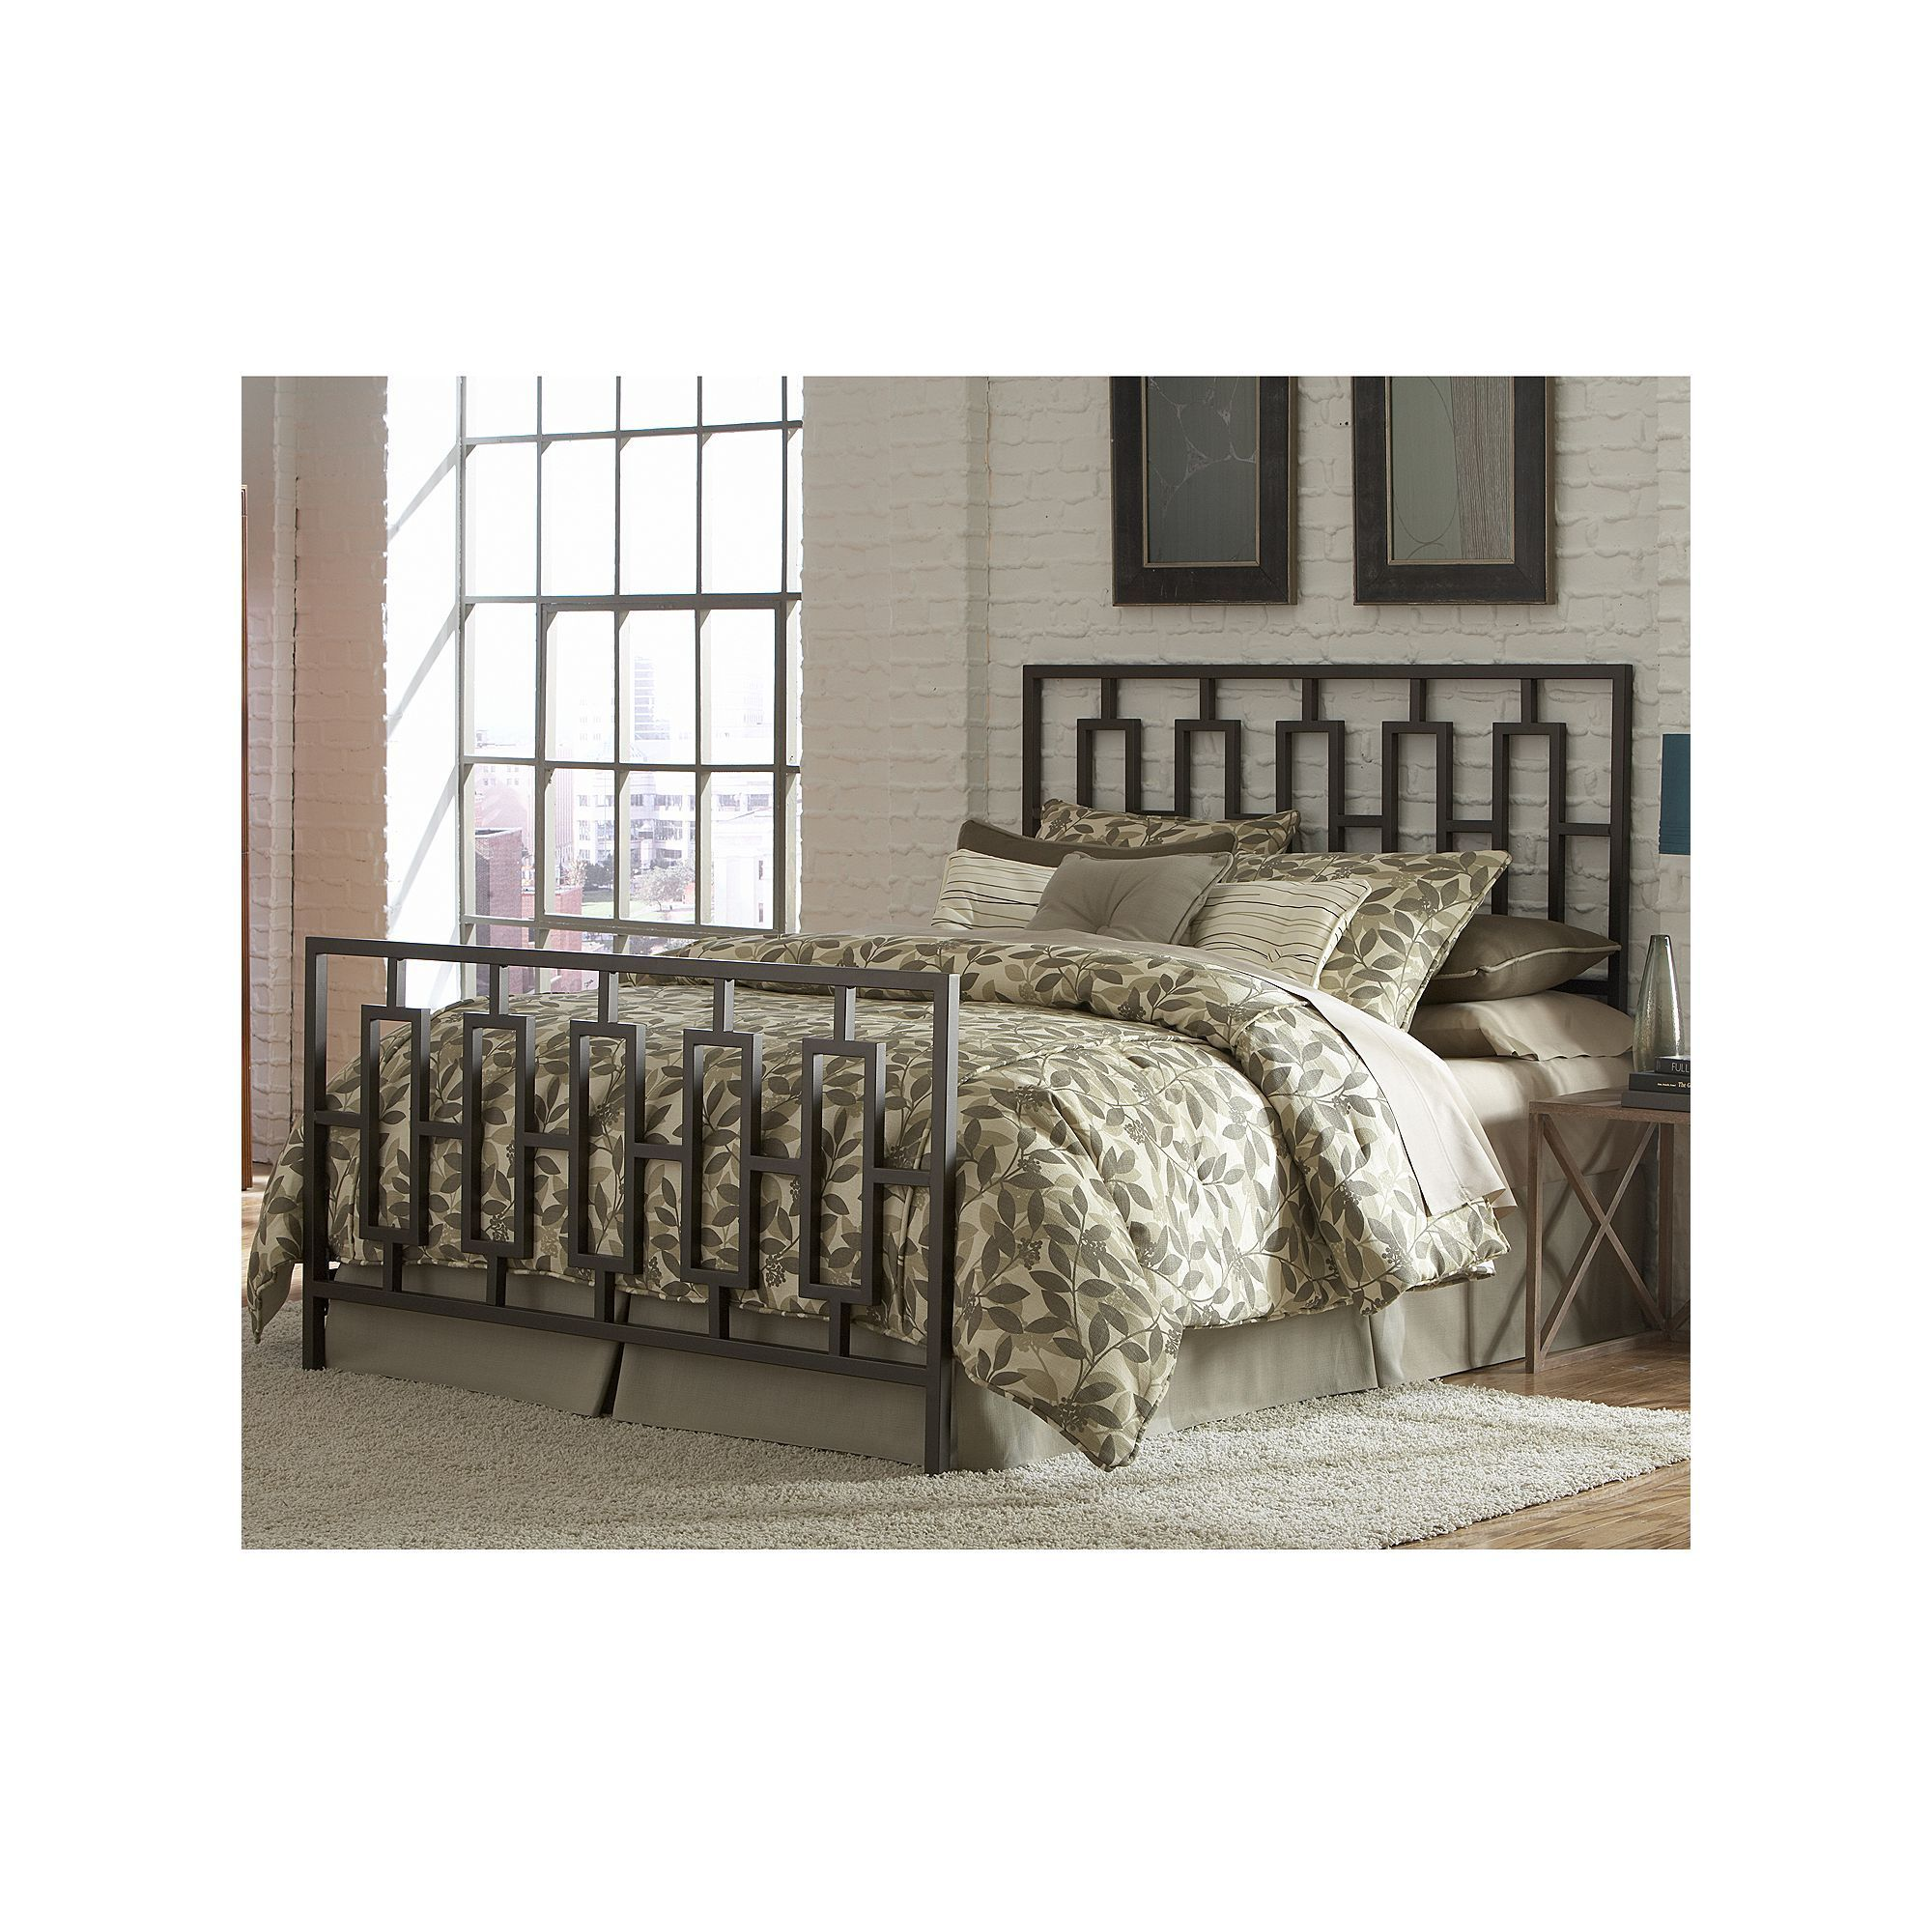 Miami Full Bed Bed Styling Adjustable Beds Brown Headboard